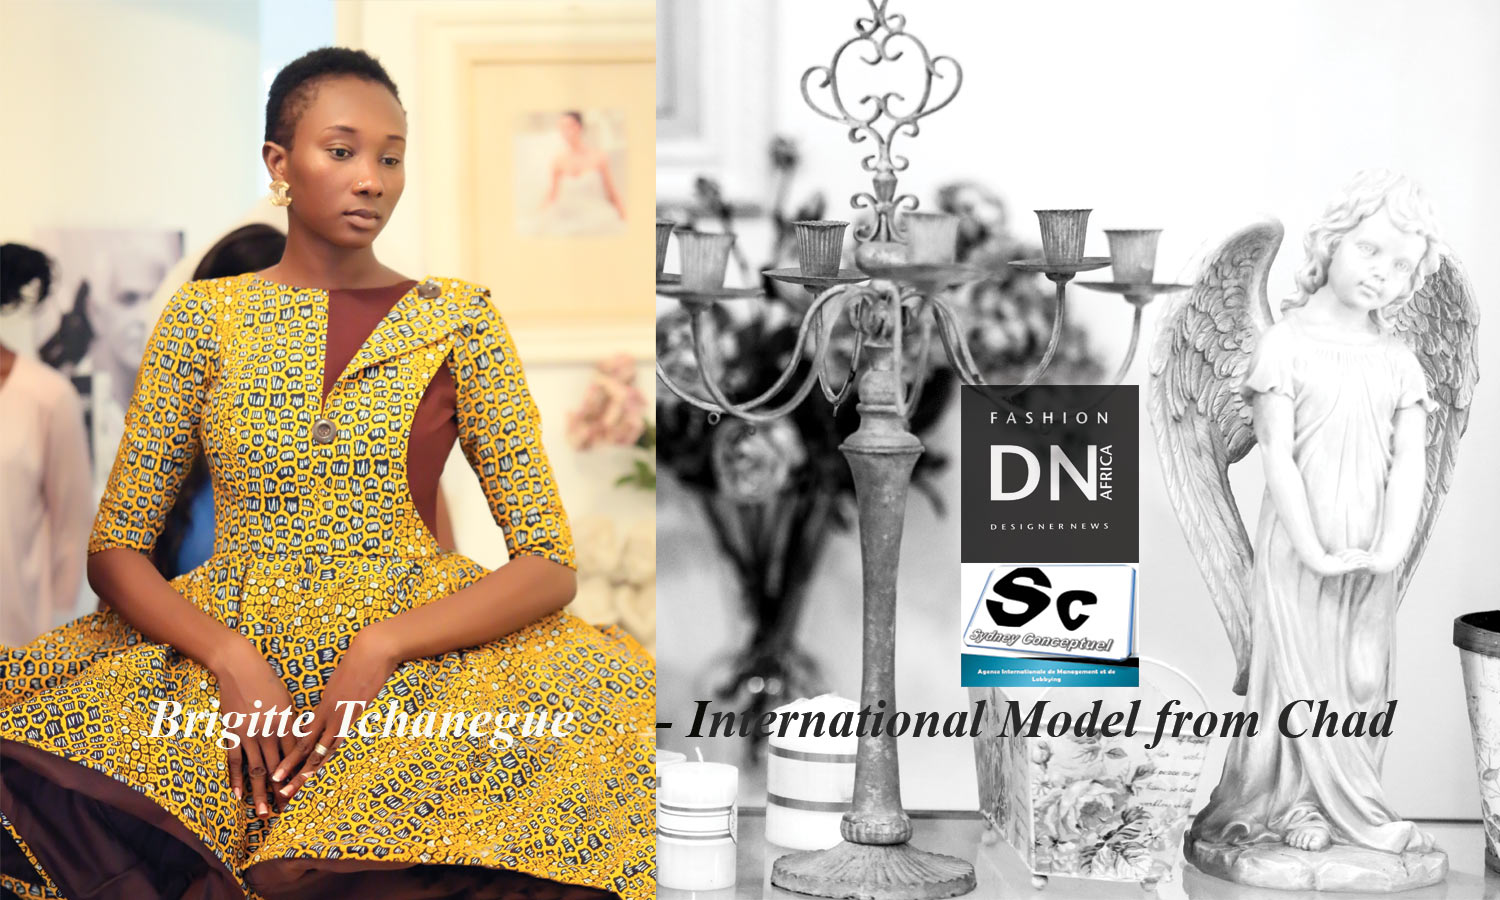 african-fashion-magazine-ama8-les awards du mannequinat africain-Brigitte-Tchanegue-International-Model-from-Chad - dn africa - STUDIO 24 NIGERIA, FATIM SIDIME FOUNDER OF LA SAGA DES MANNEQUINS - SYDNEY CONCEPTUEL